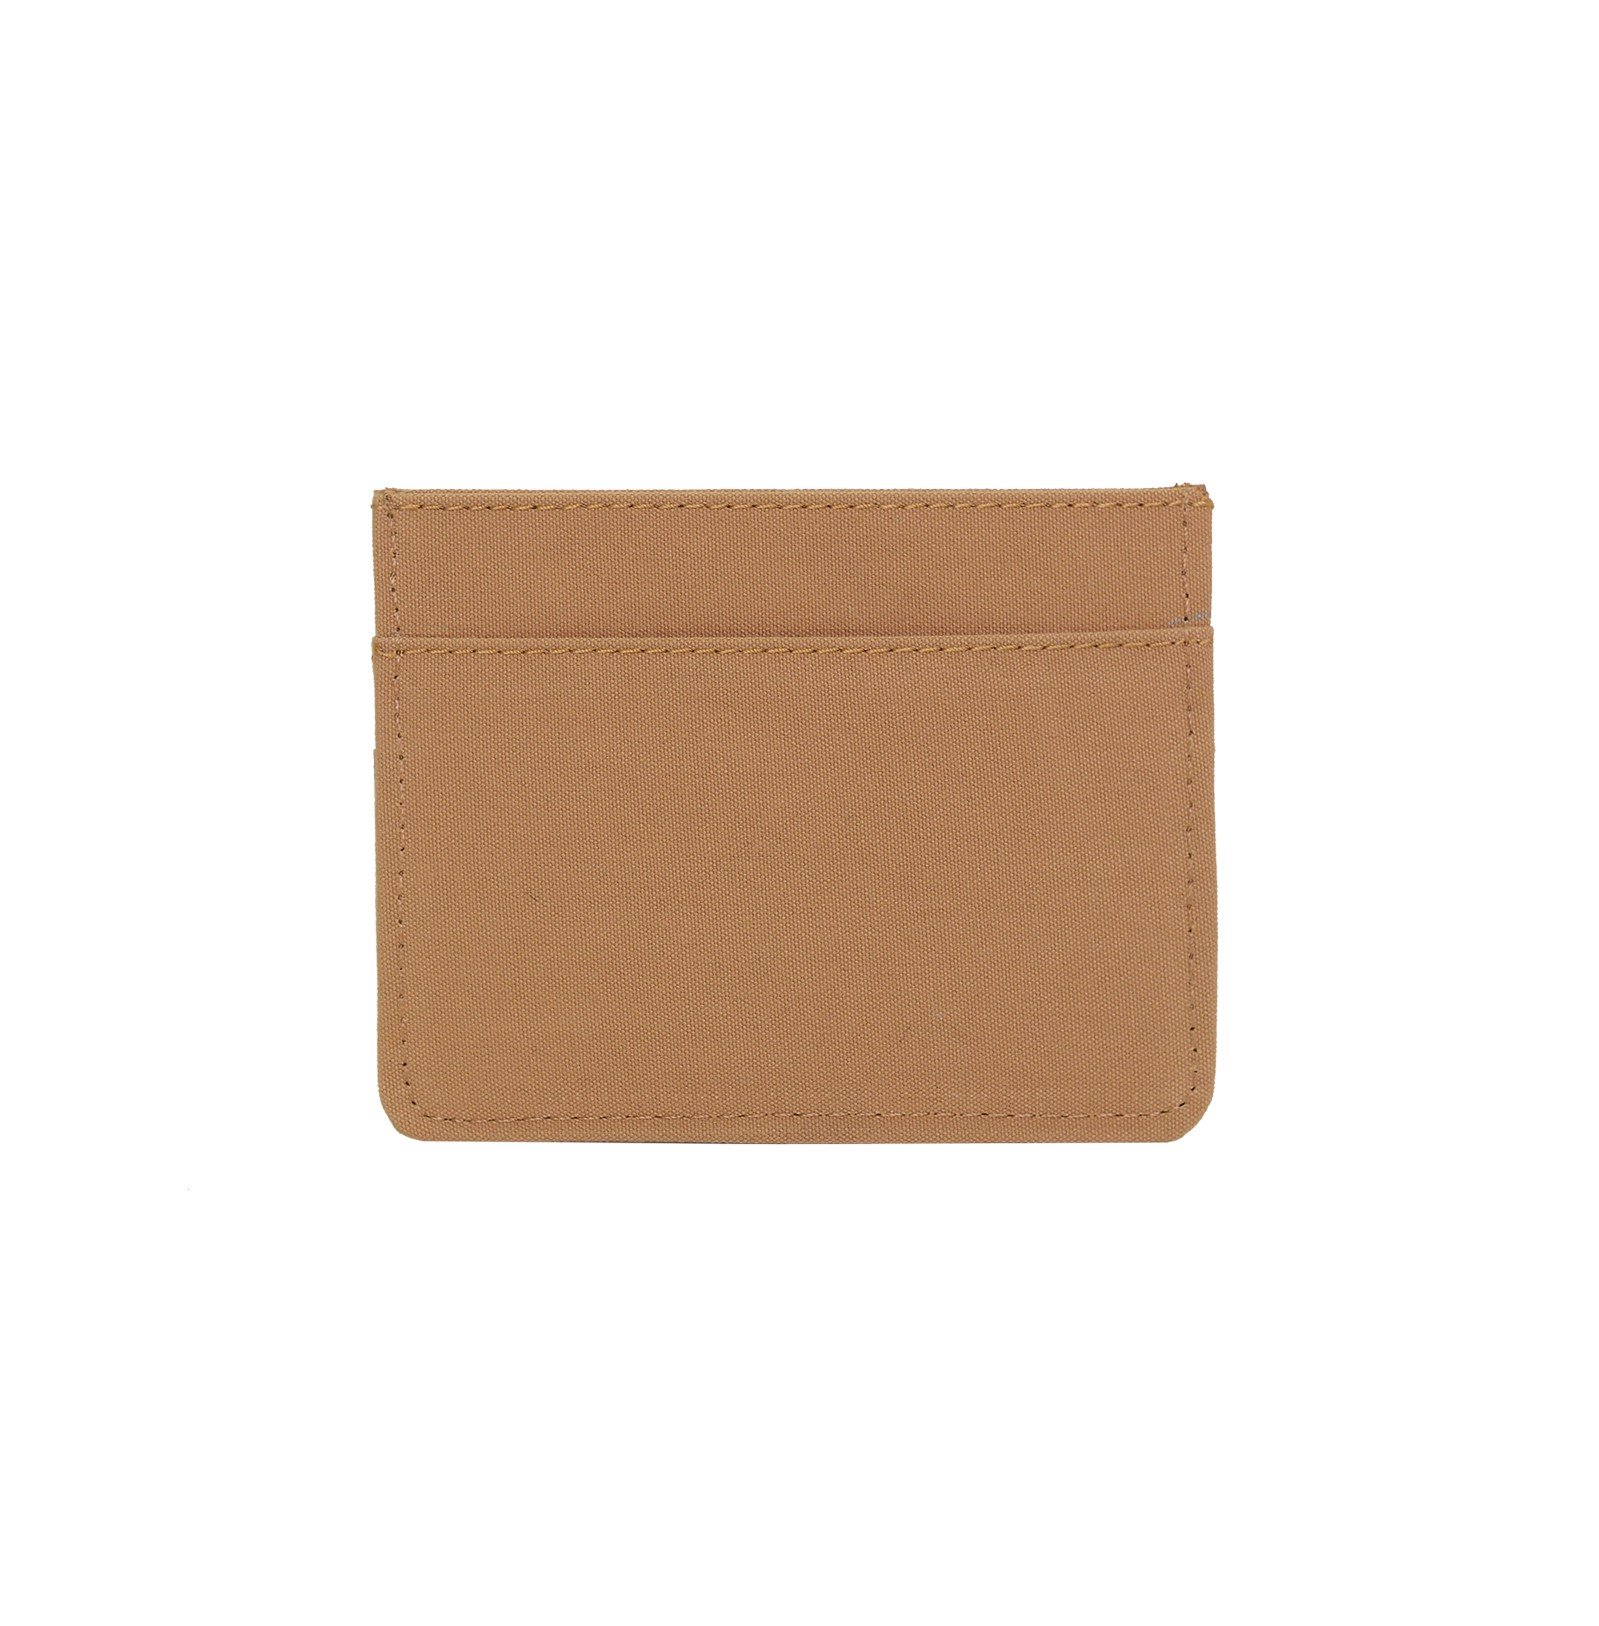 SLIM WALLET - CARAMEL